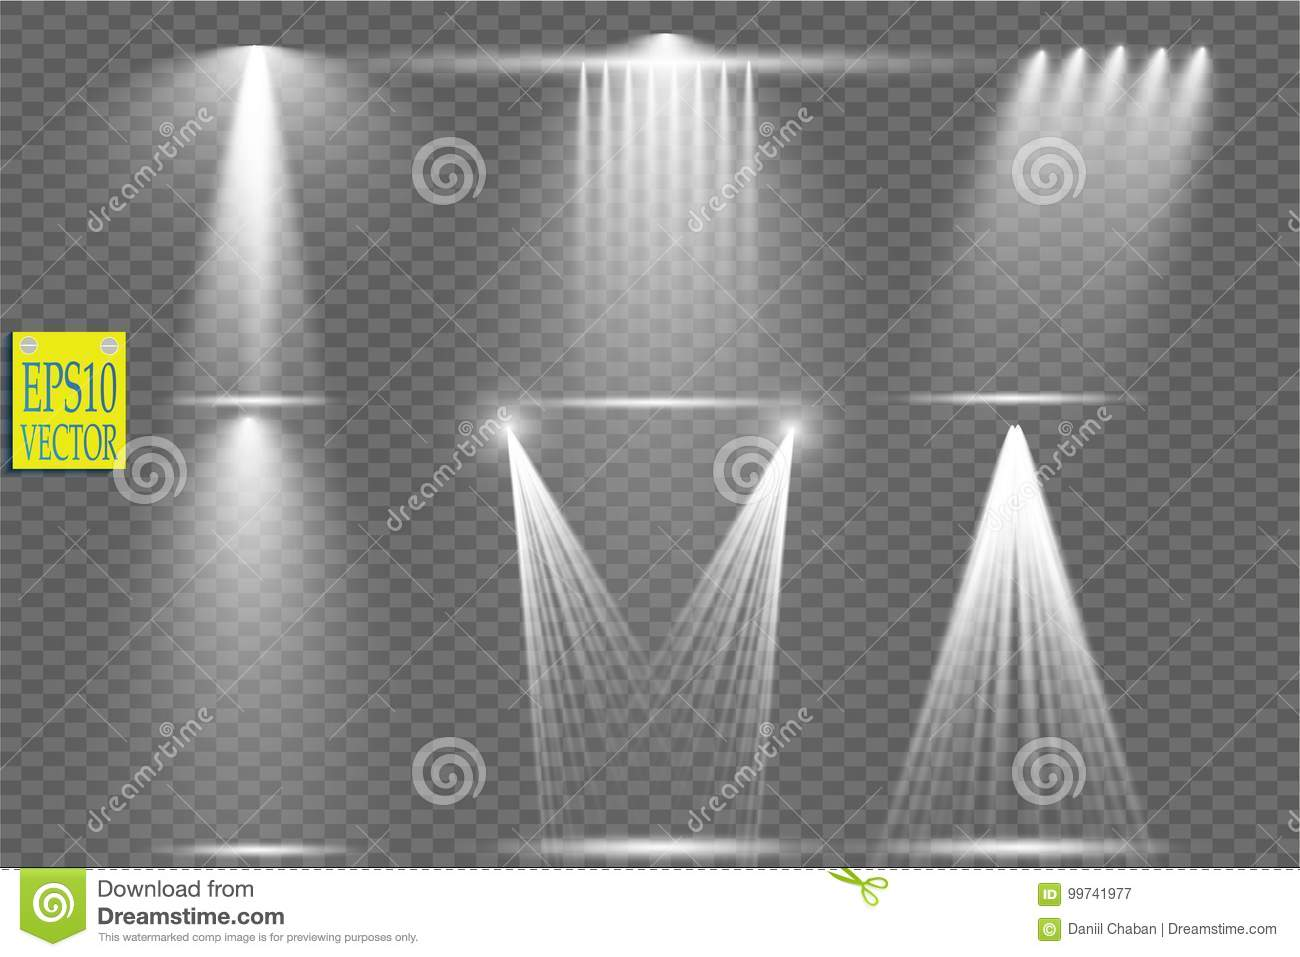 Download Vector Light Sources, Concert Lighting, Stage Spotlights Set. Concert Spotlight With Beam, Illuminated Spotlights For Stock Vector - Illustration of light, lamp: 99741977